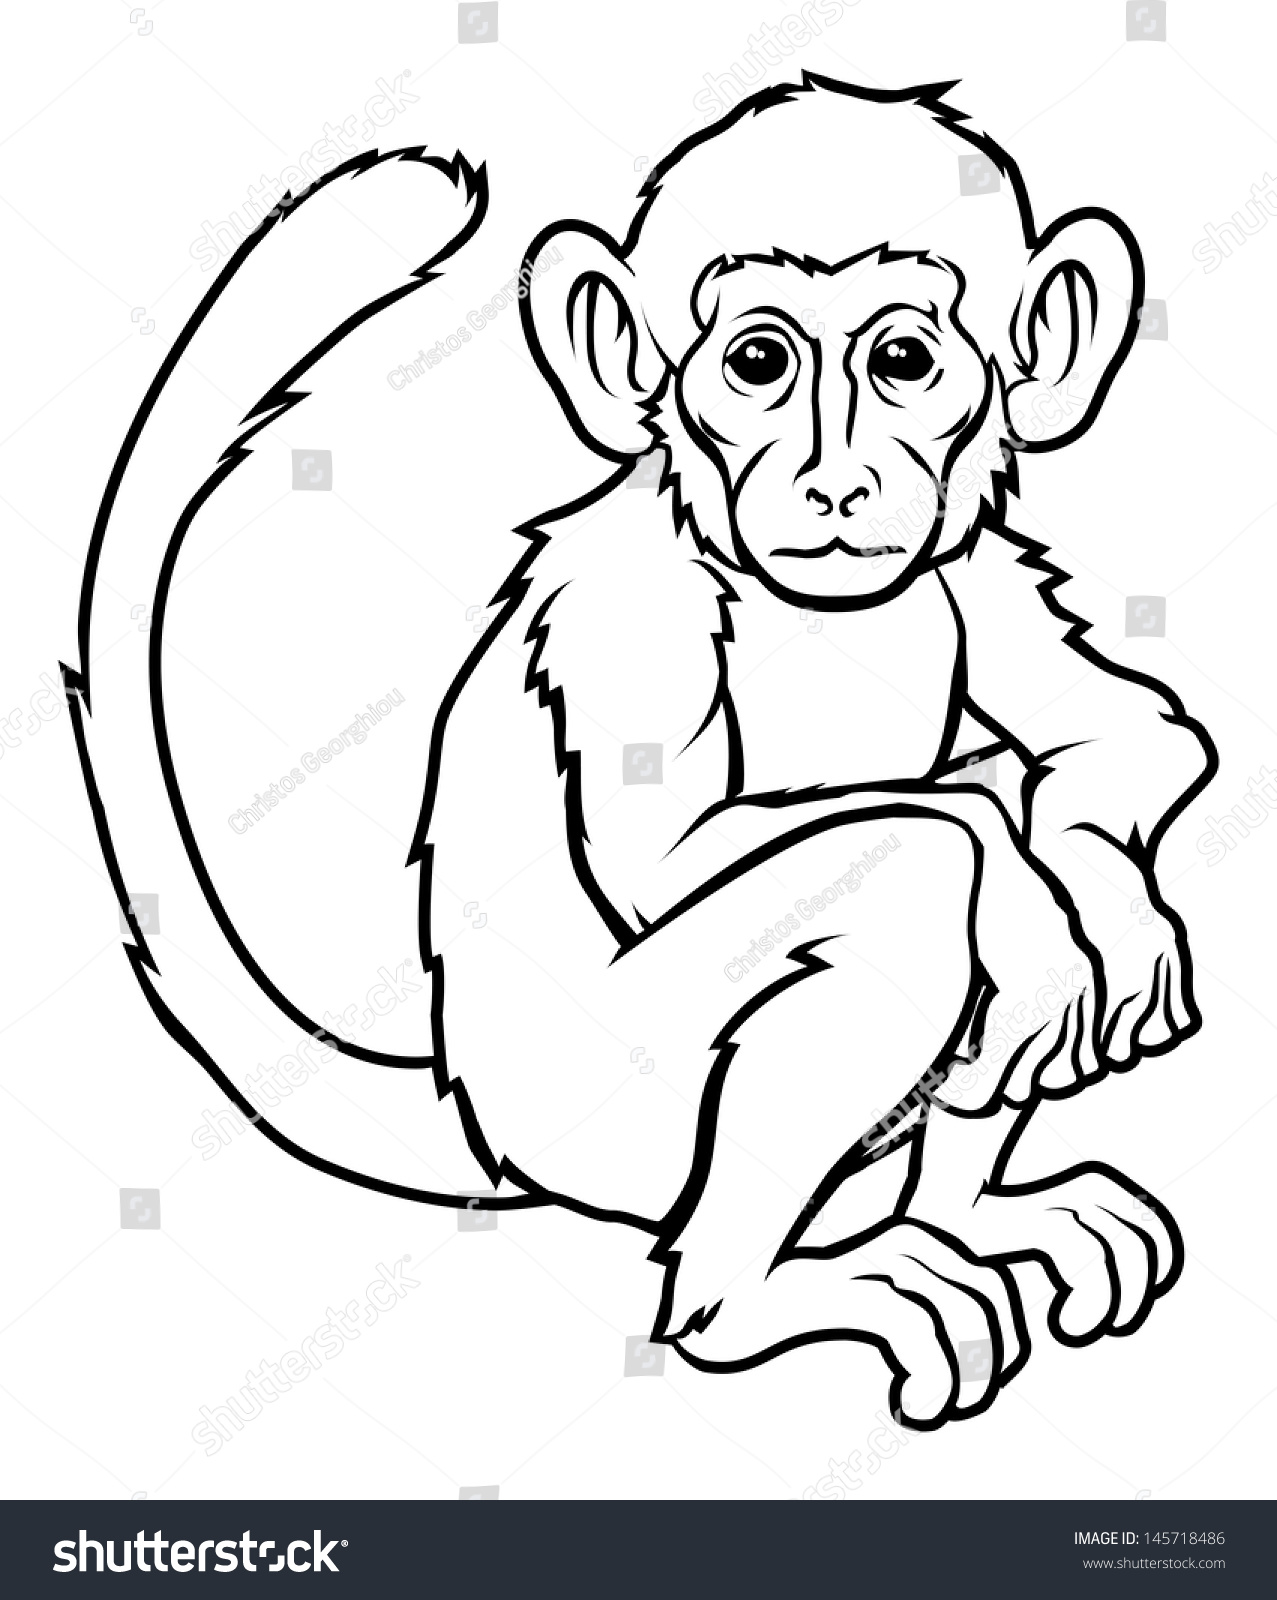 2f72d2881 An illustration of a stylised monkey perhaps a monkey tattoo.